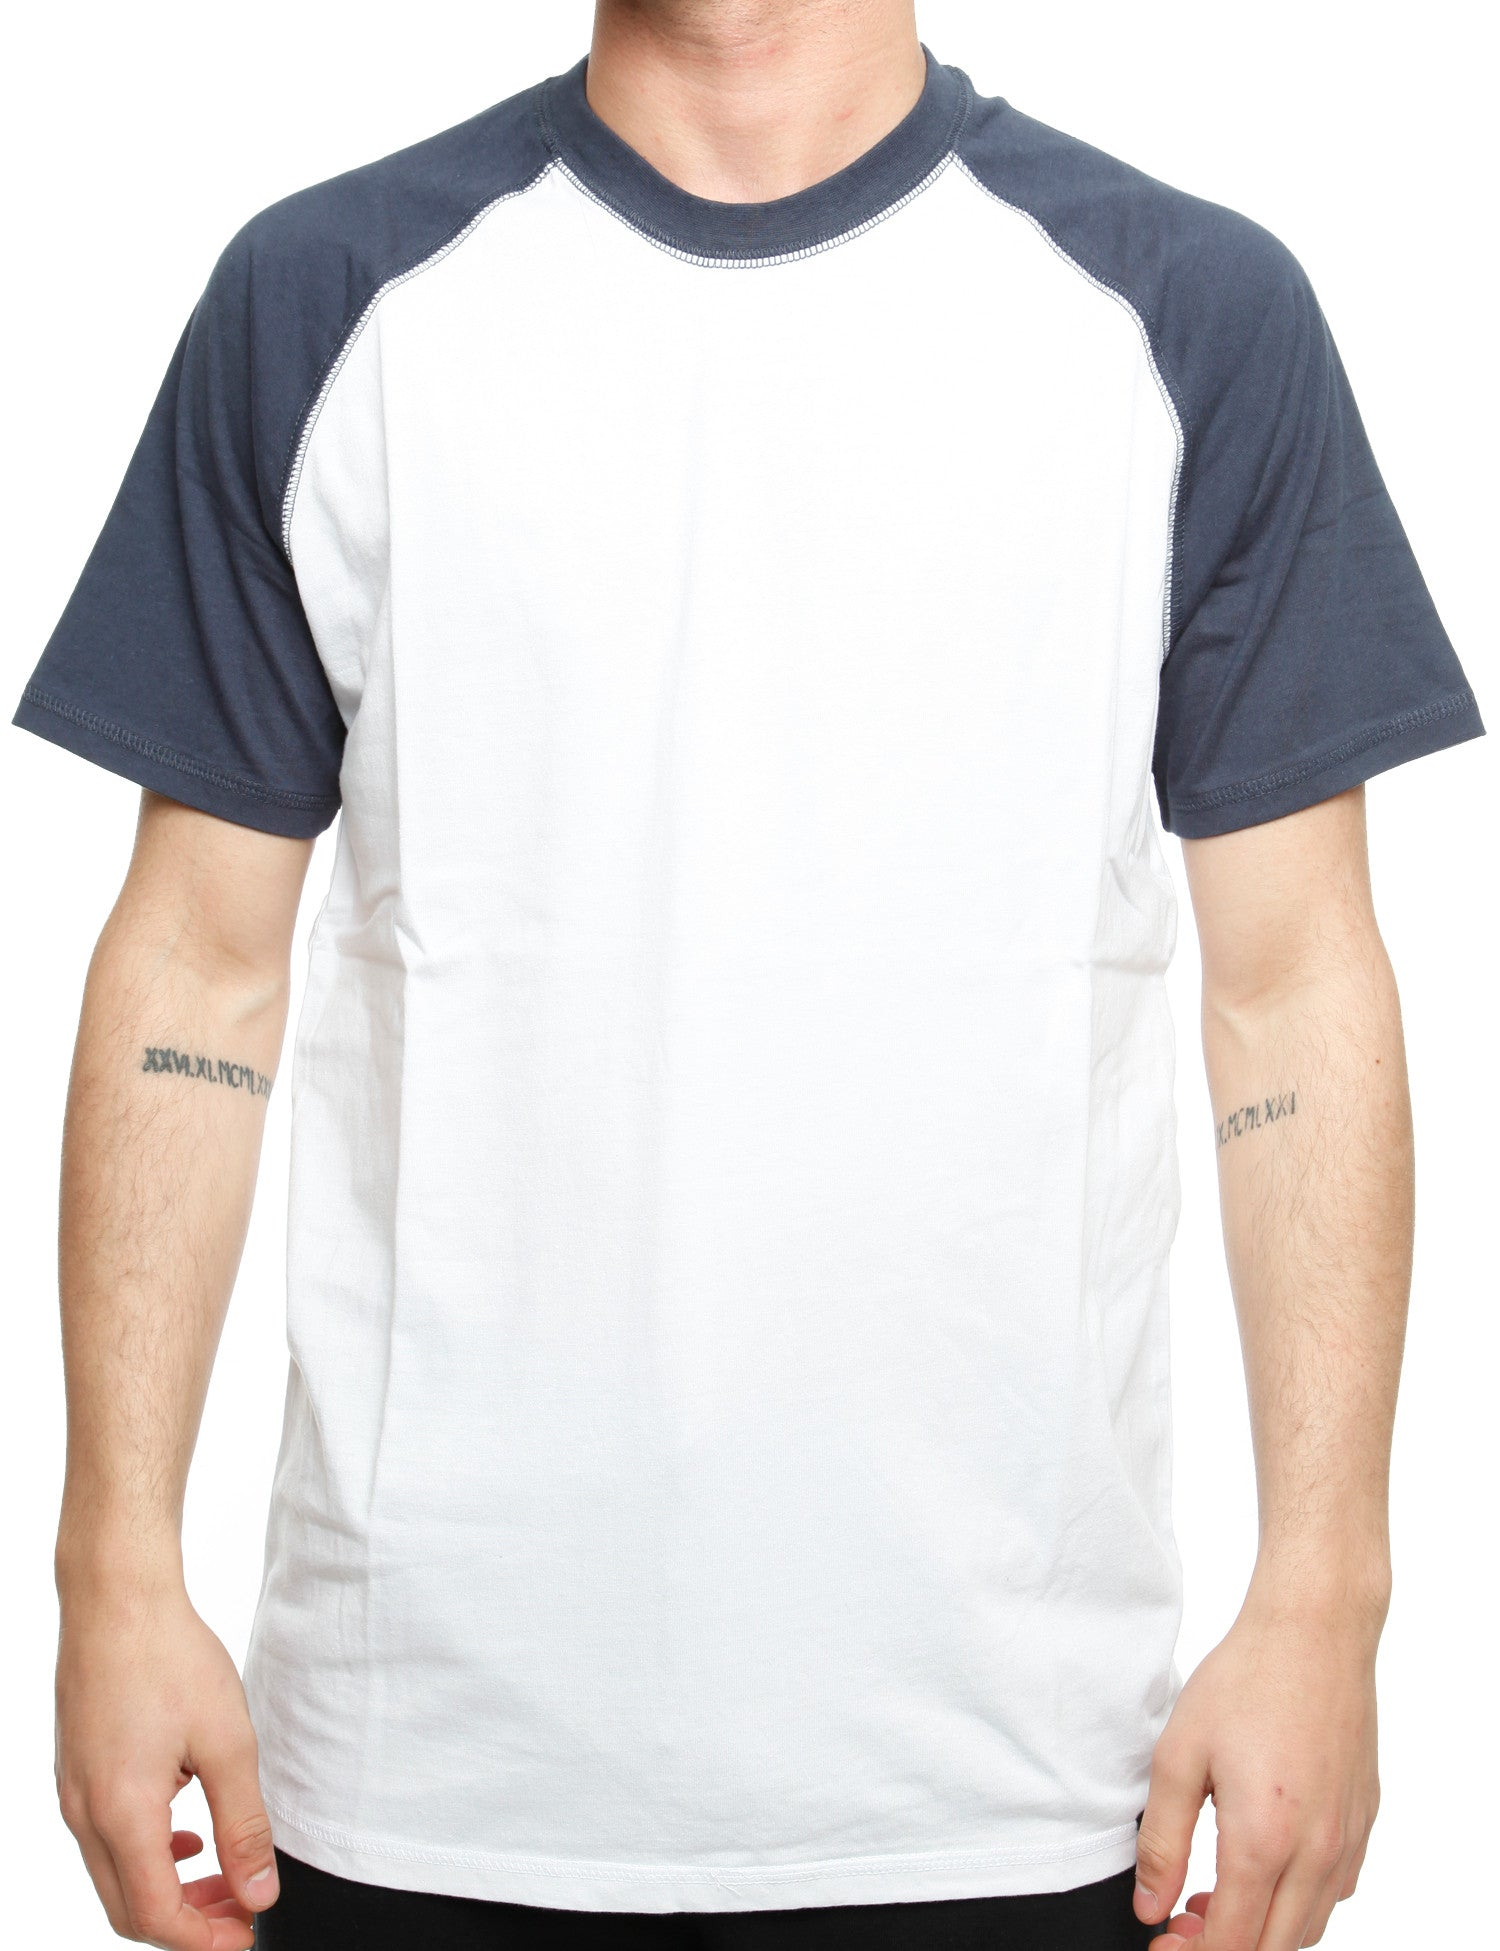 Dickies Destin T-Shirt 06 210330 Navy